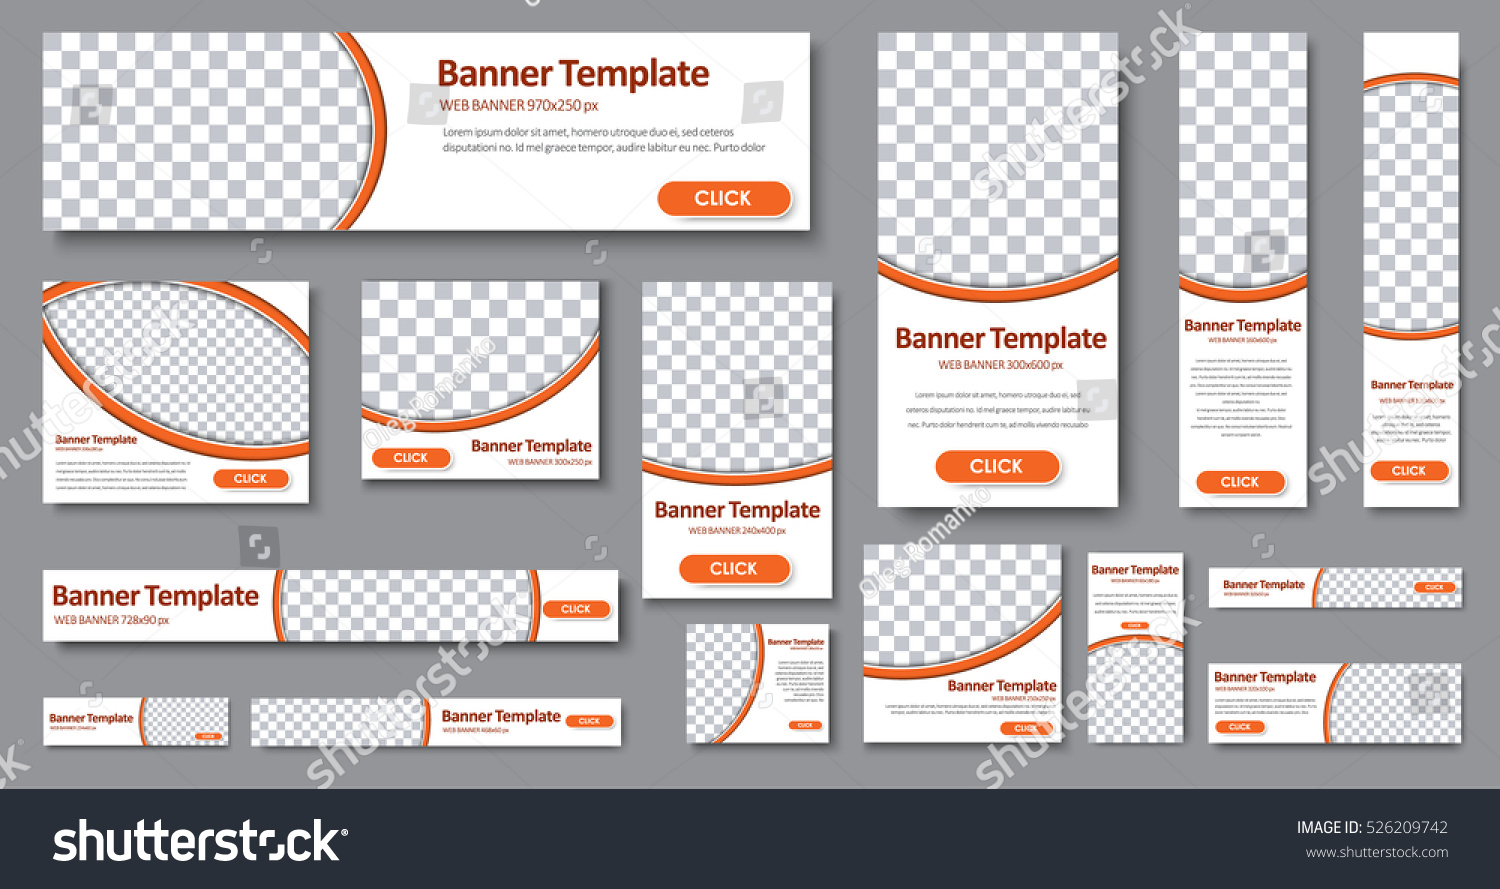 Design Web banners of different standard sizes. Templates with round place for photos, buttons. Vector illustration. Set. #526209742